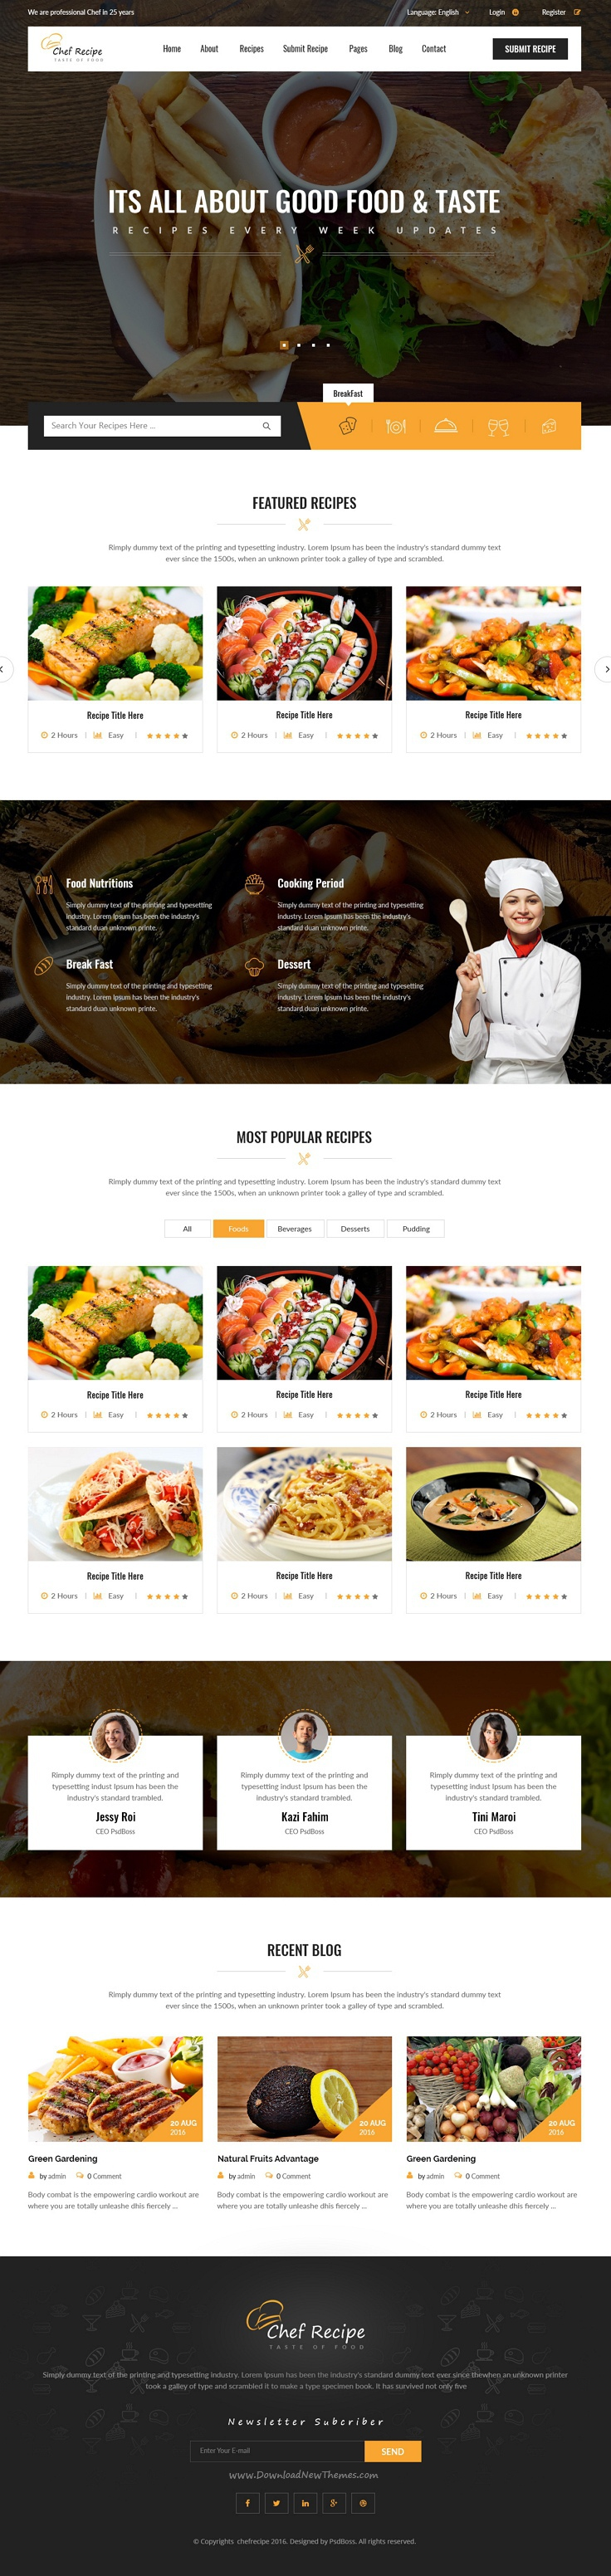 Chef recipe food and recipe psd template chef recipes and psd chef recipe food and recipe psd template chef recipe is designed for food recipes forumfinder Choice Image